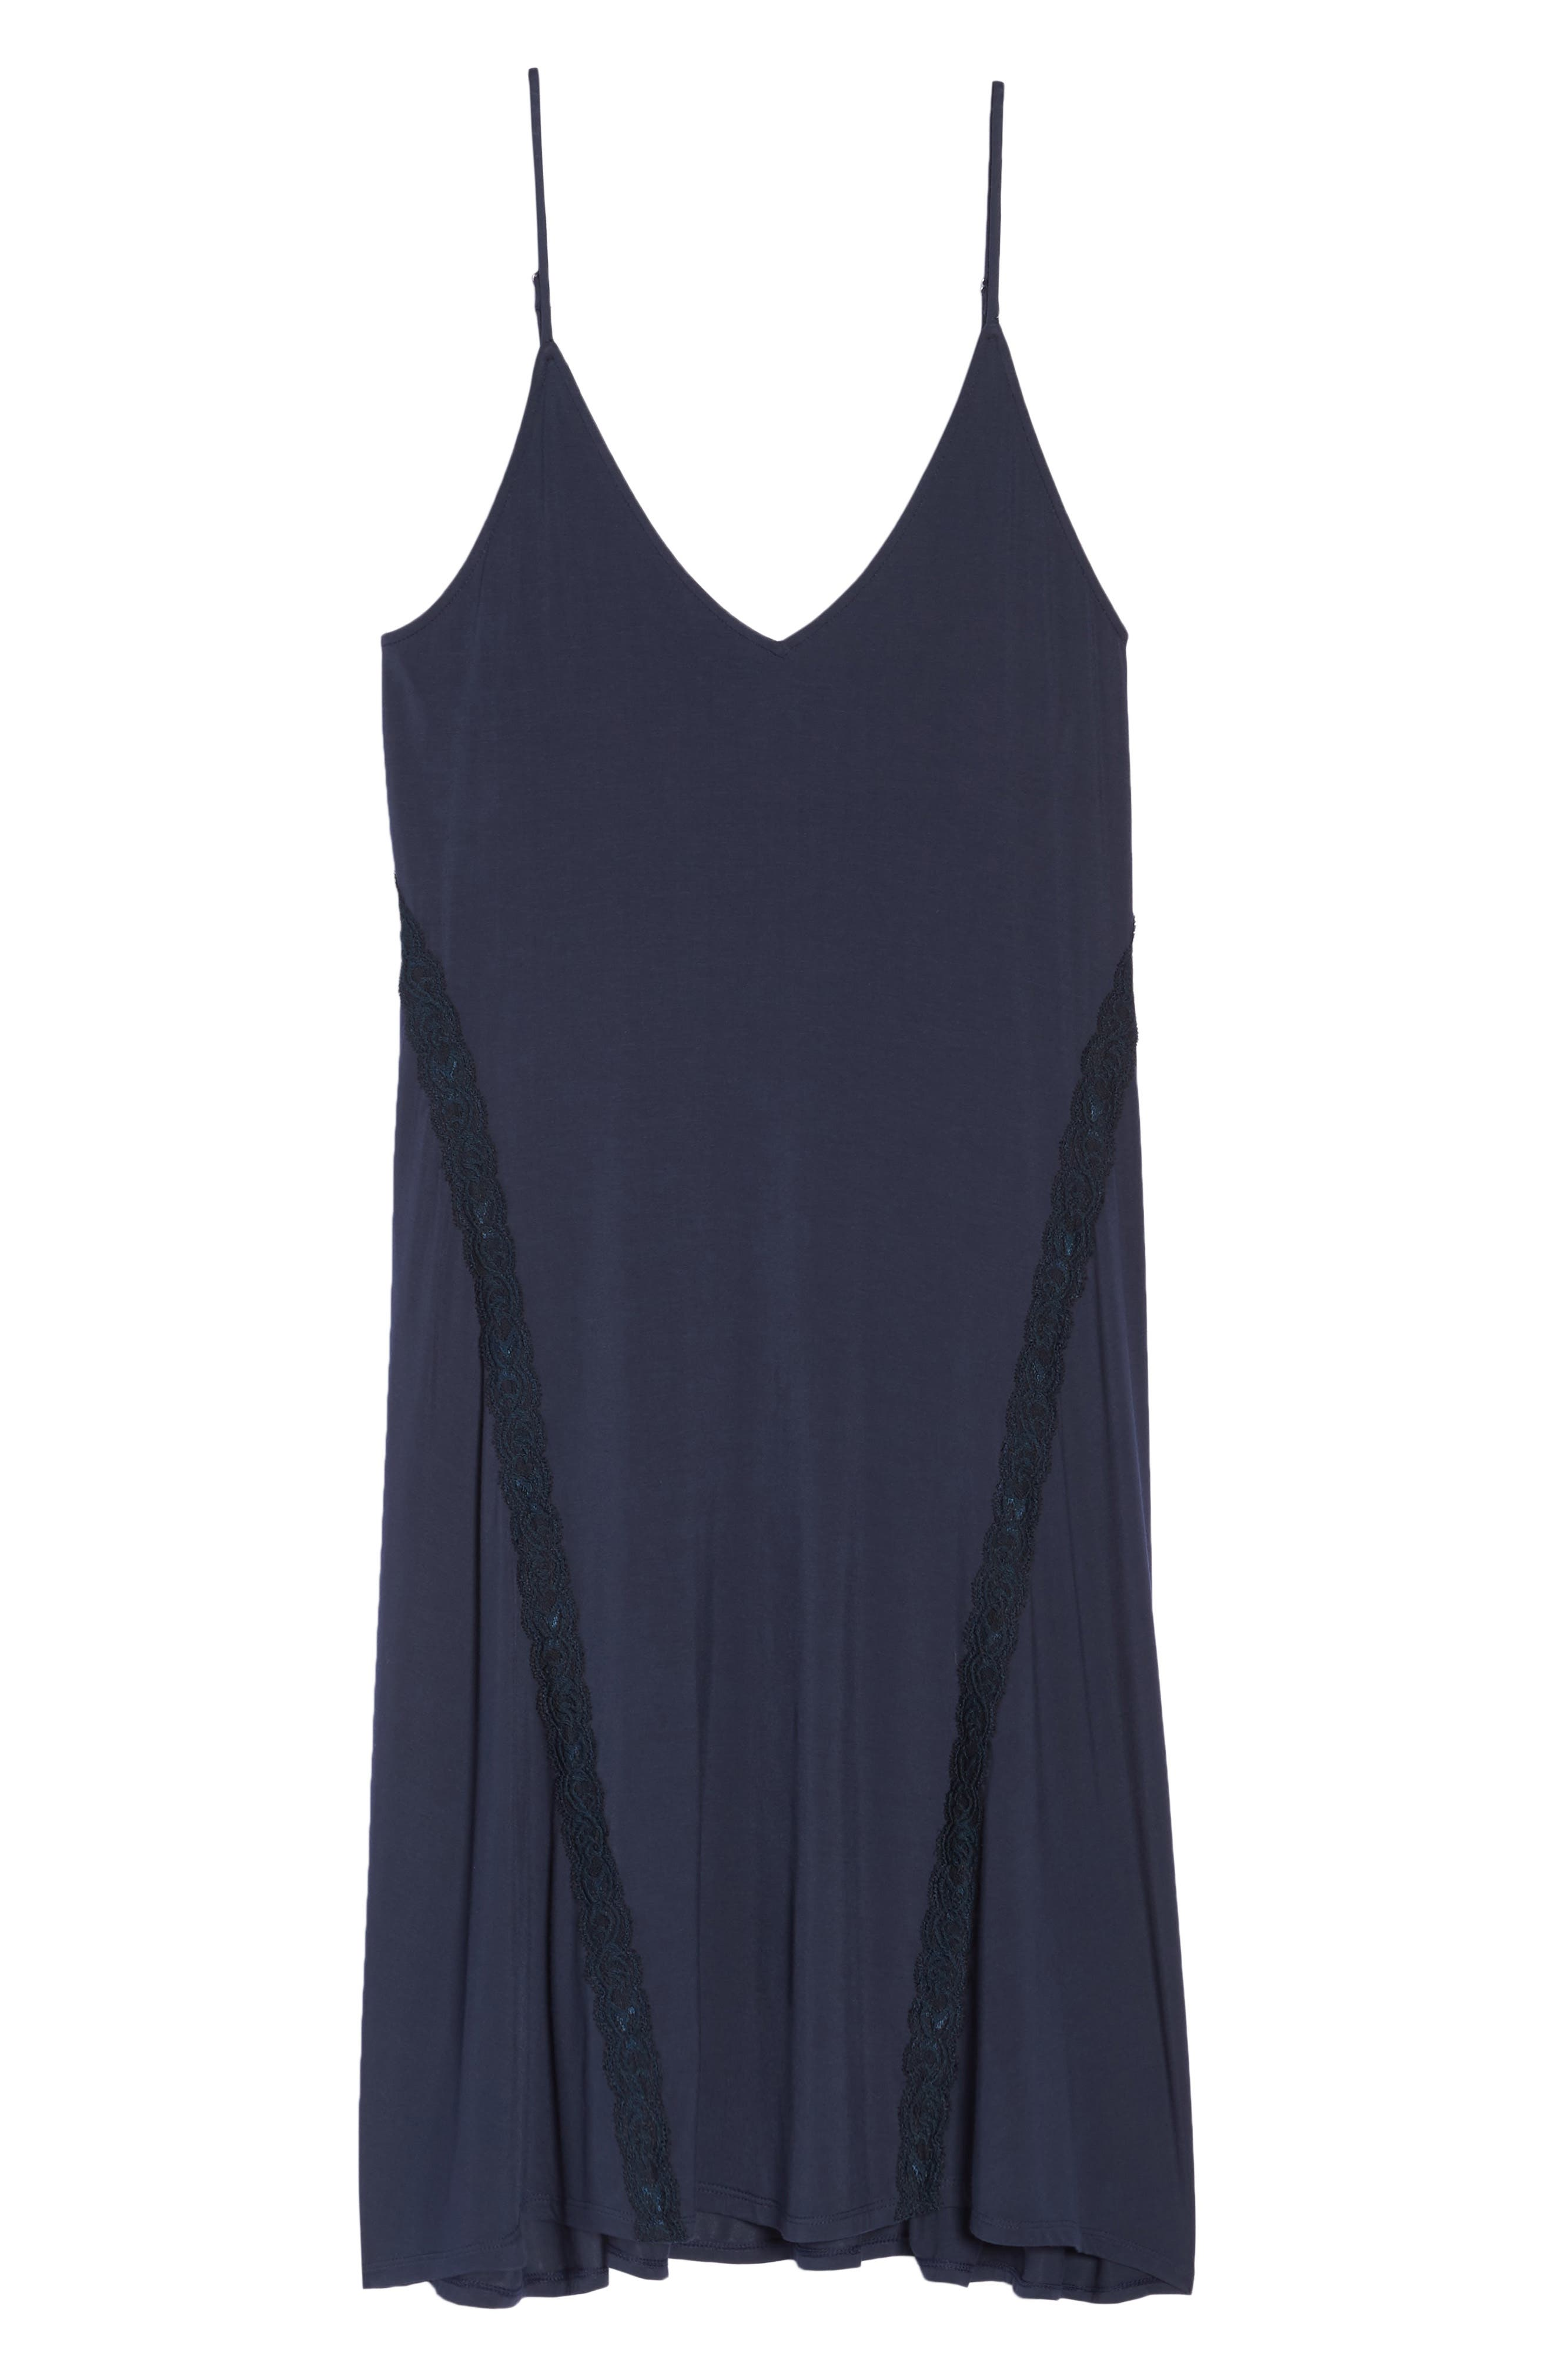 Feathers Essential Nightgown,                             Alternate thumbnail 6, color,                             403